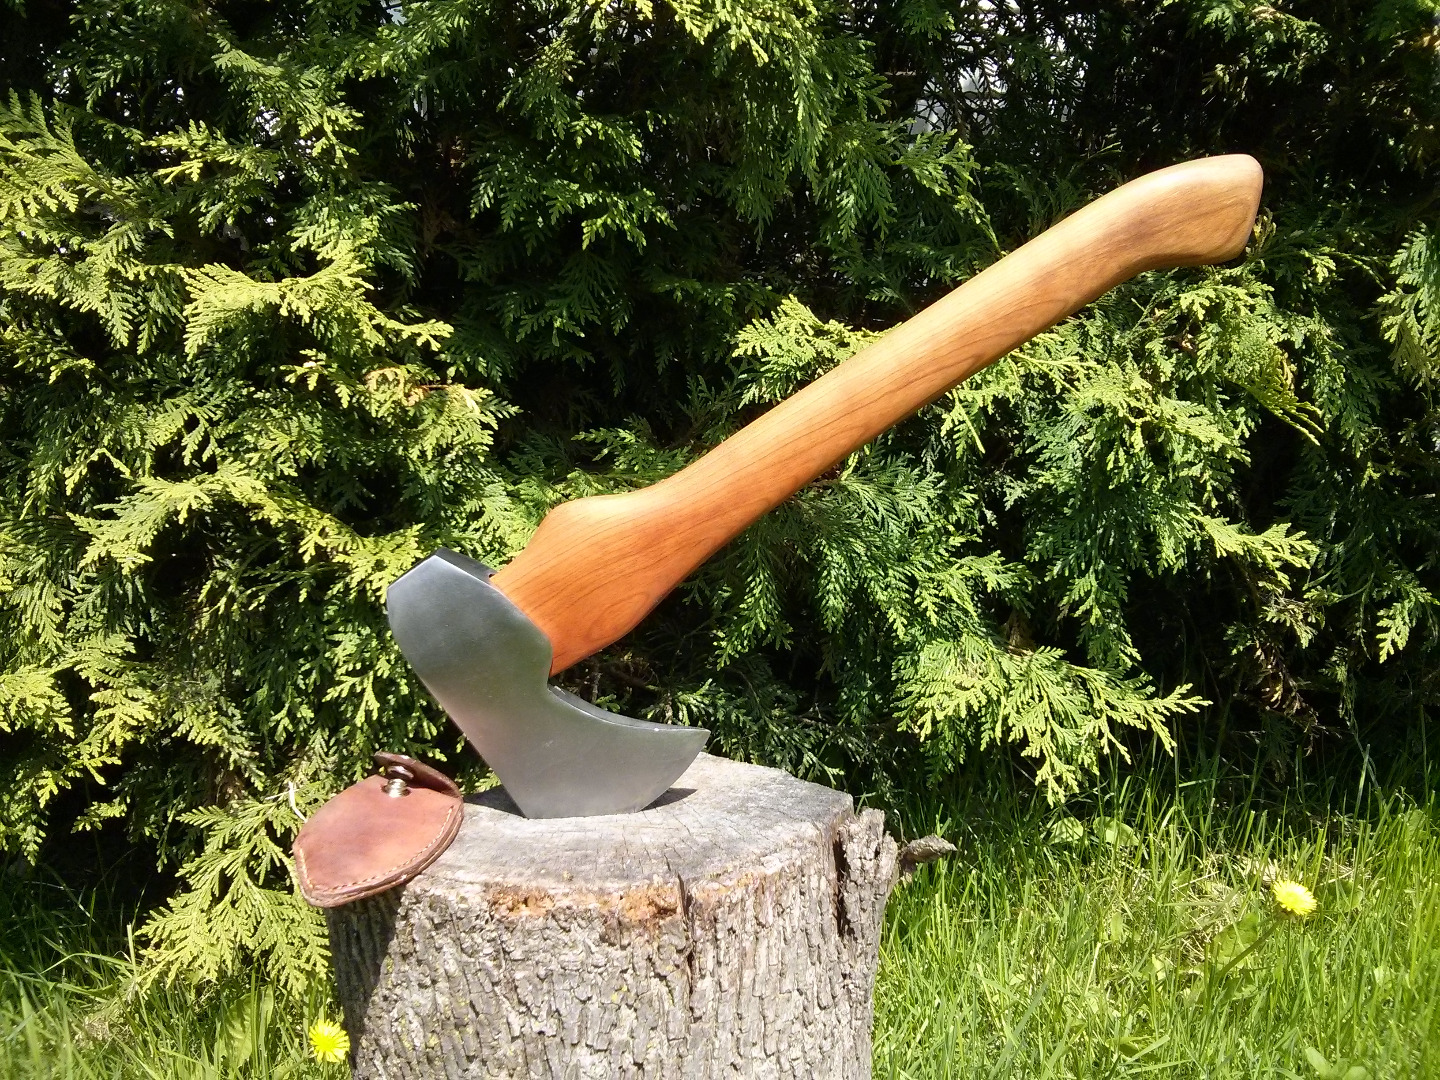 Picture of Artisan Axe Created From Discarded Vintage Axe Head